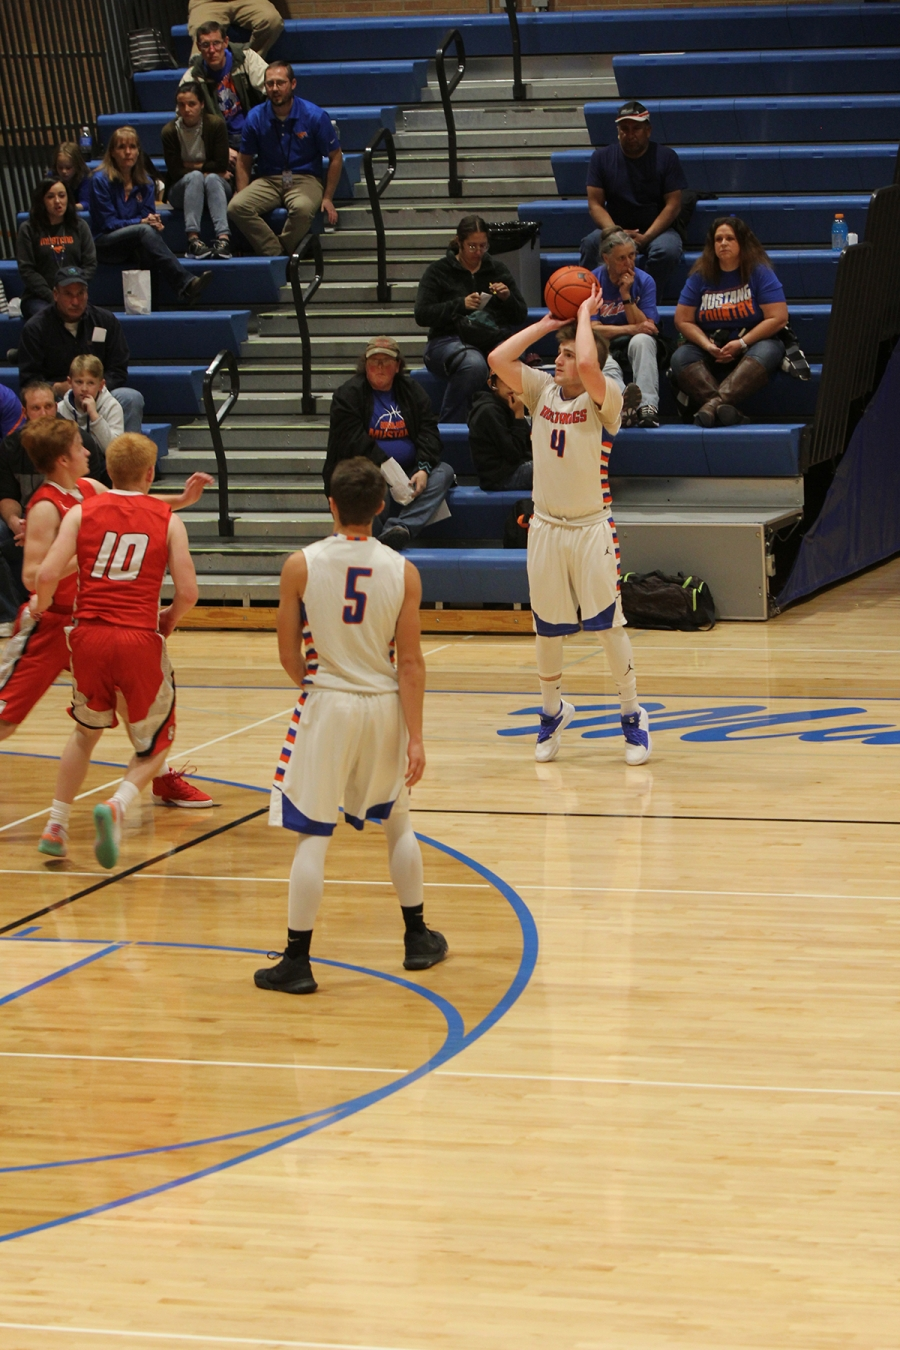 Dylan Schwarting set a team record for most points in a game with 40 points in their home game against Hemingford Friday night.